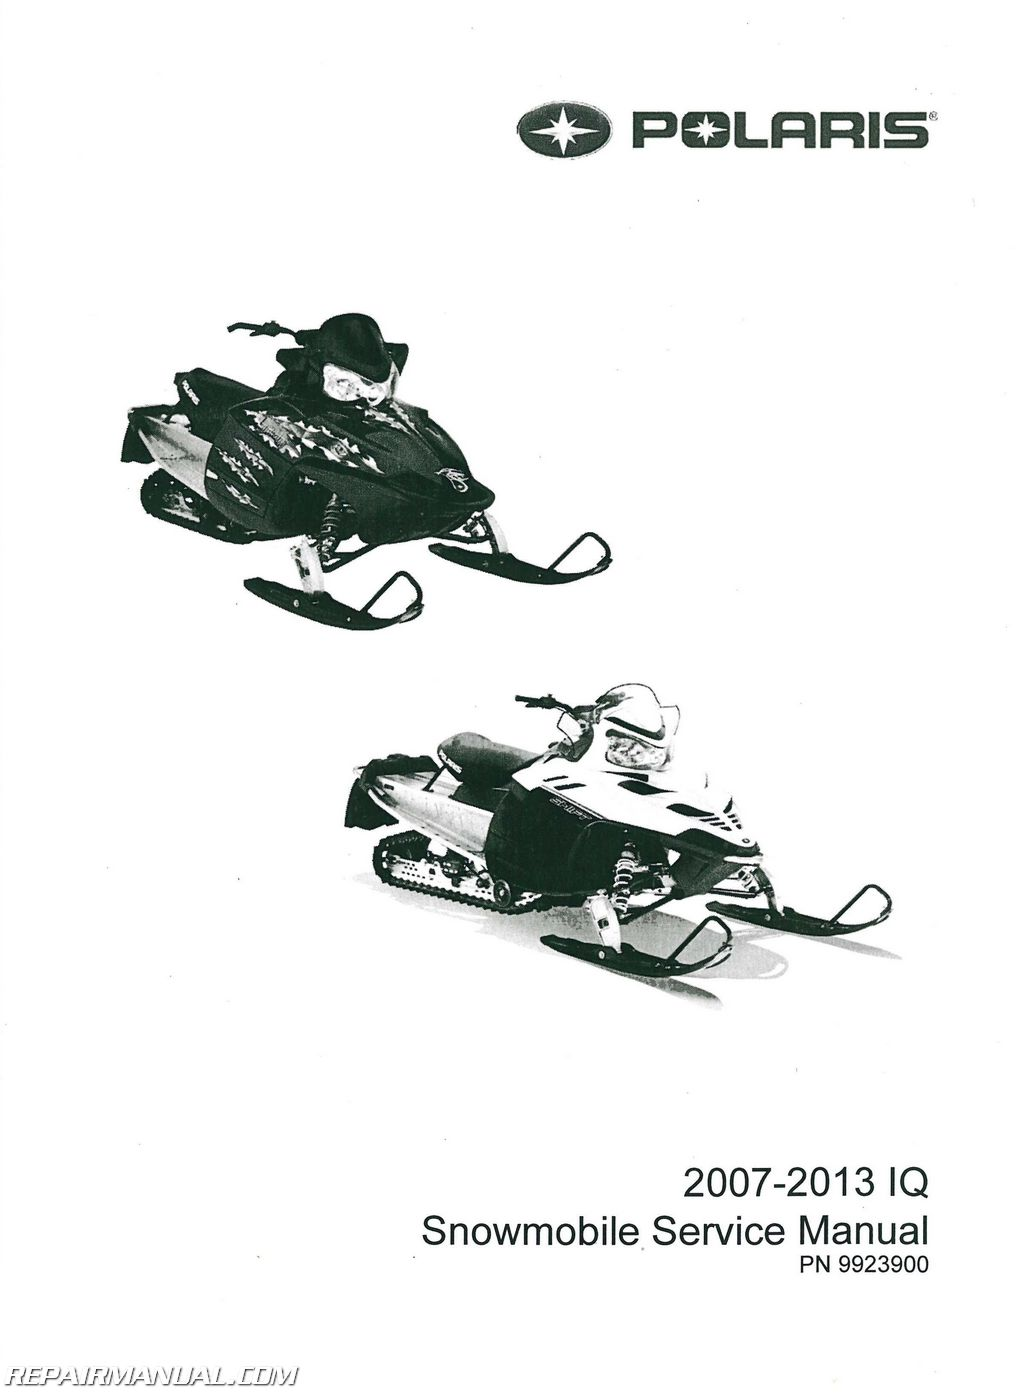 2007 2013 polaris iq snowmobile service manual rh repairmanual com